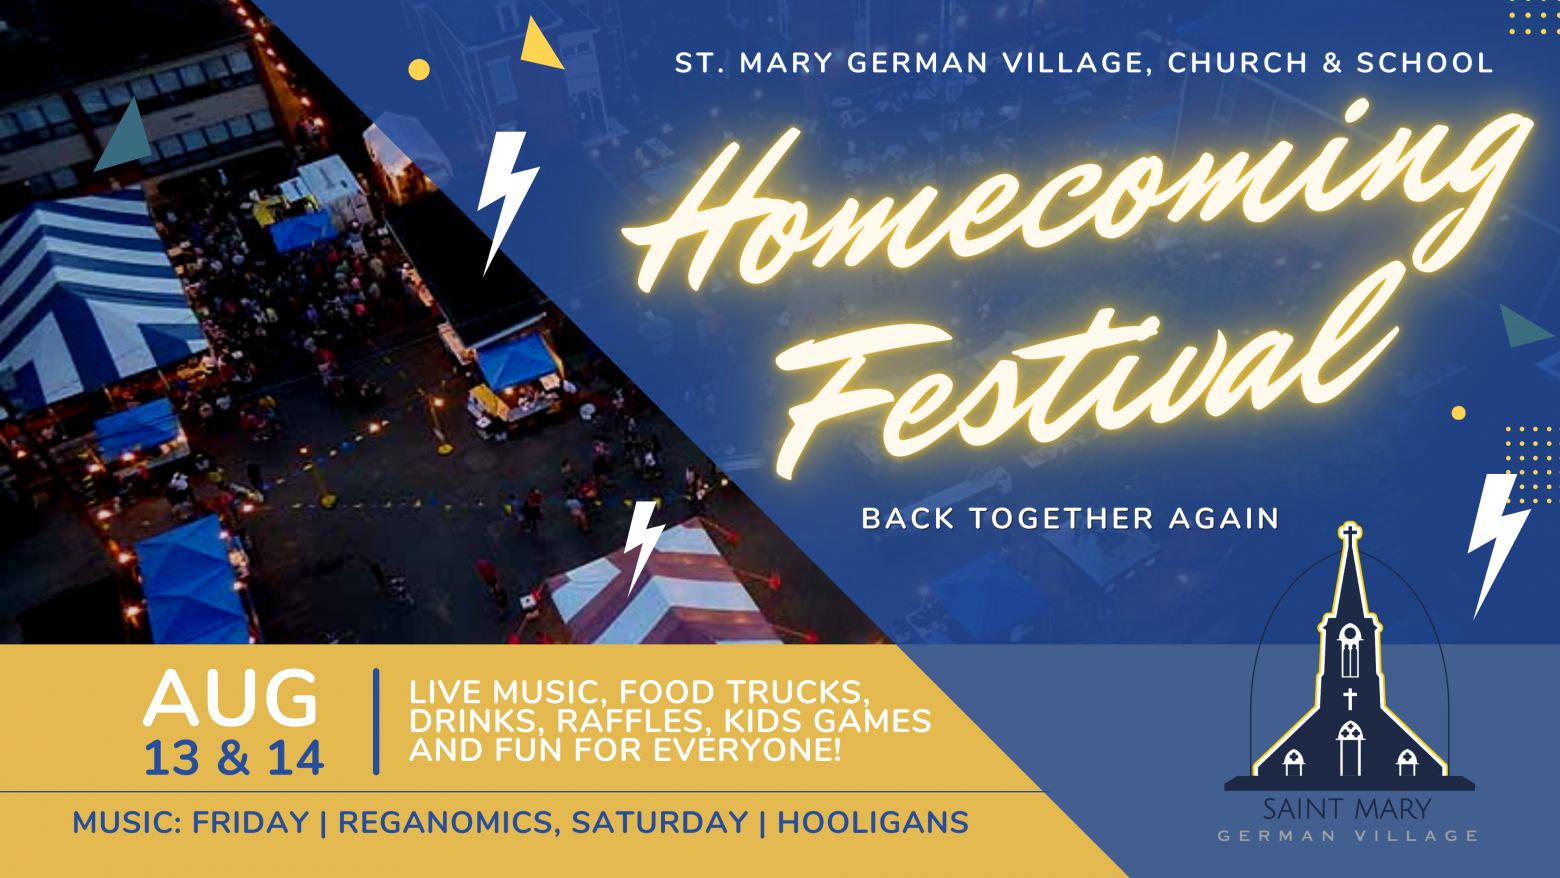 St. Mary's Homecoming Festival